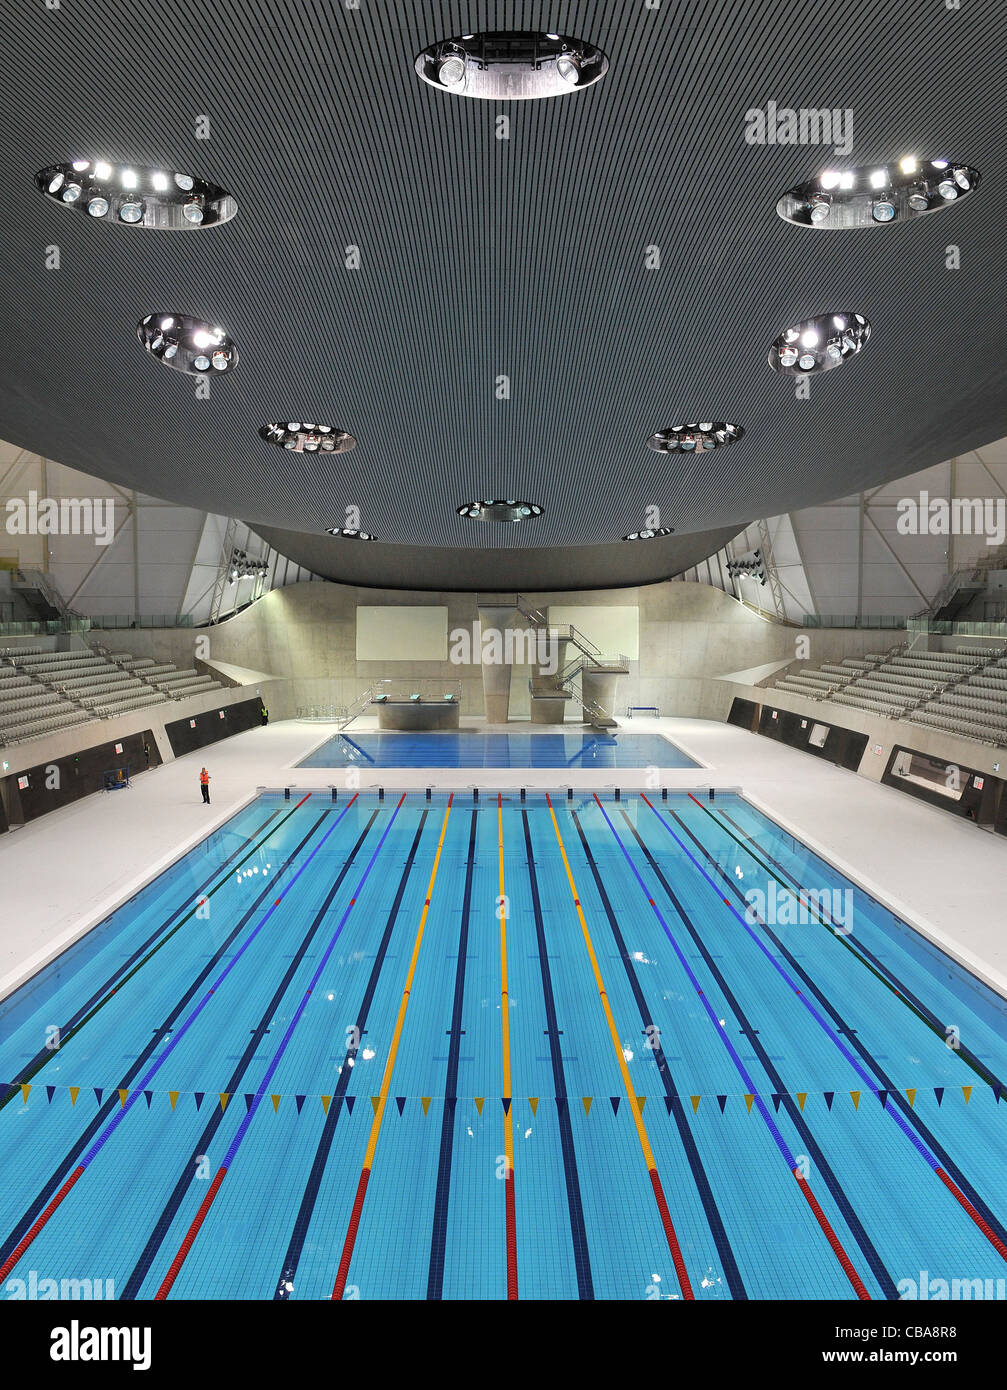 olympic swimming pool 2012. July 2012. London England. The Swimming And Diving Arena At Olympic Village For Th Pool 2012 L